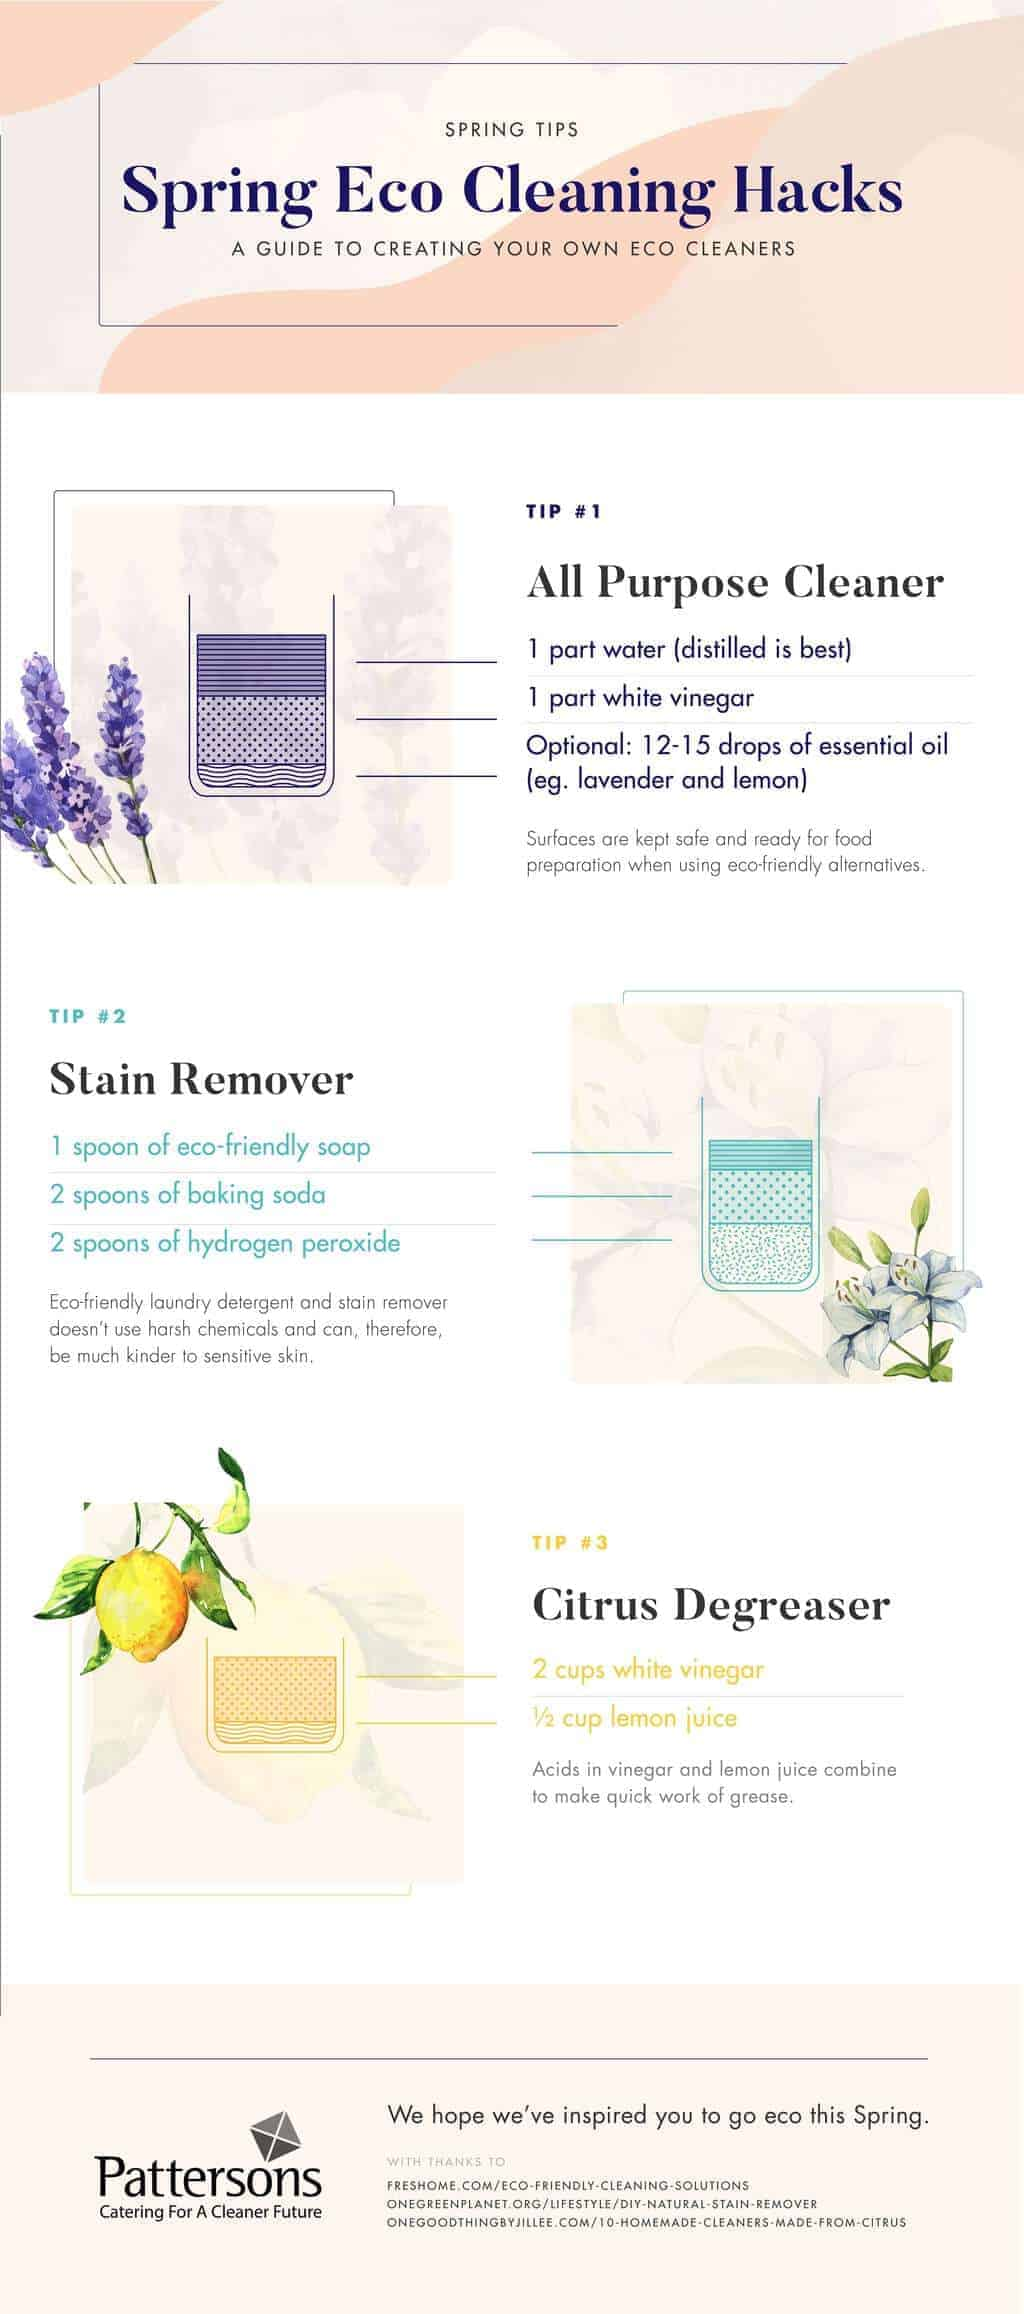 Pattersons Spring Eco Cleaning Hacks